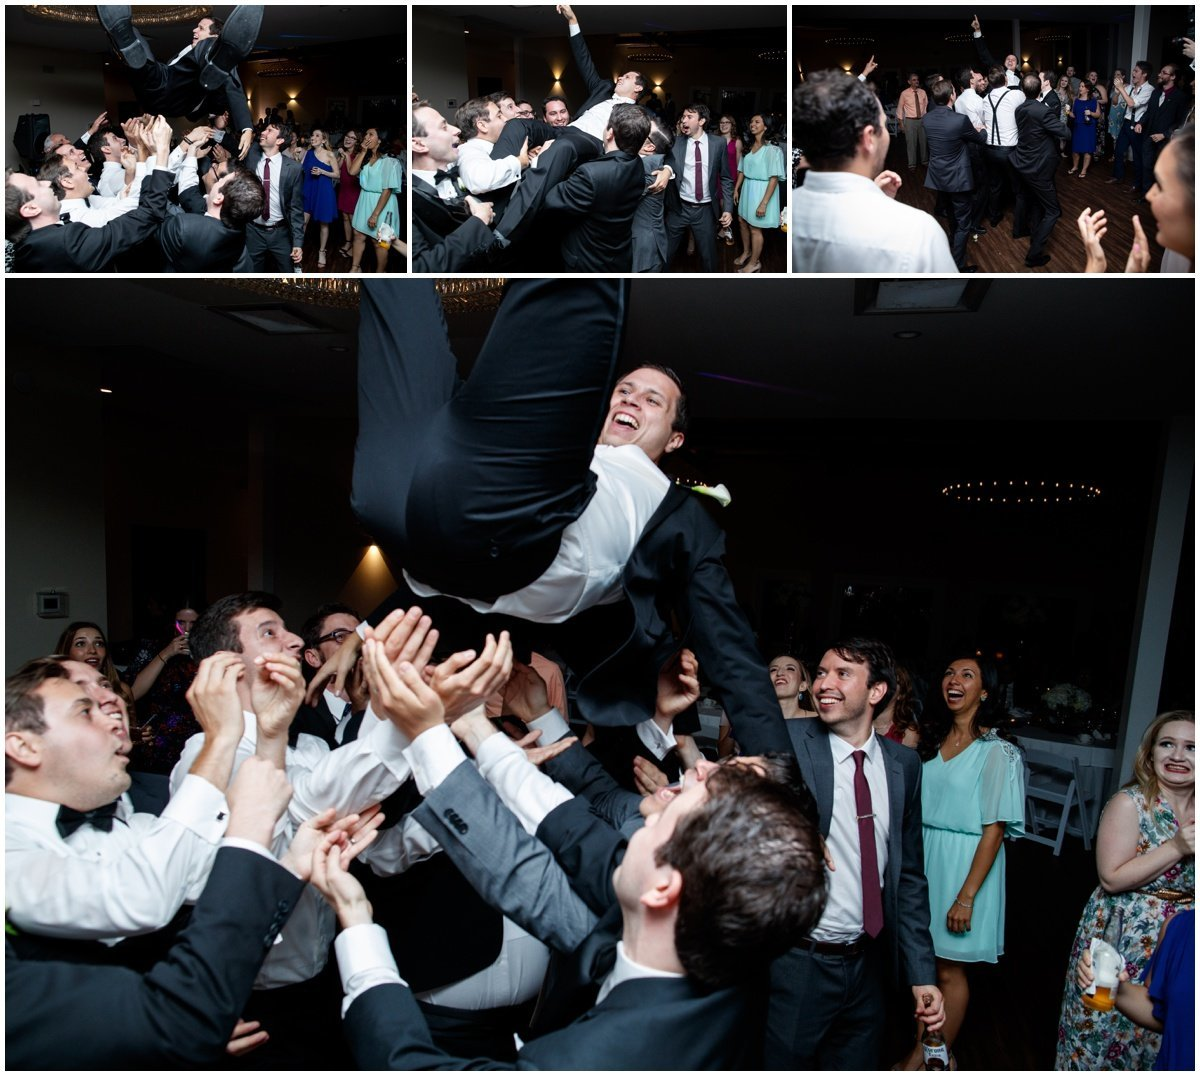 austin wedding photographer vintage villas groom dancing 4209 Eck Ln, Austin, TX 78734